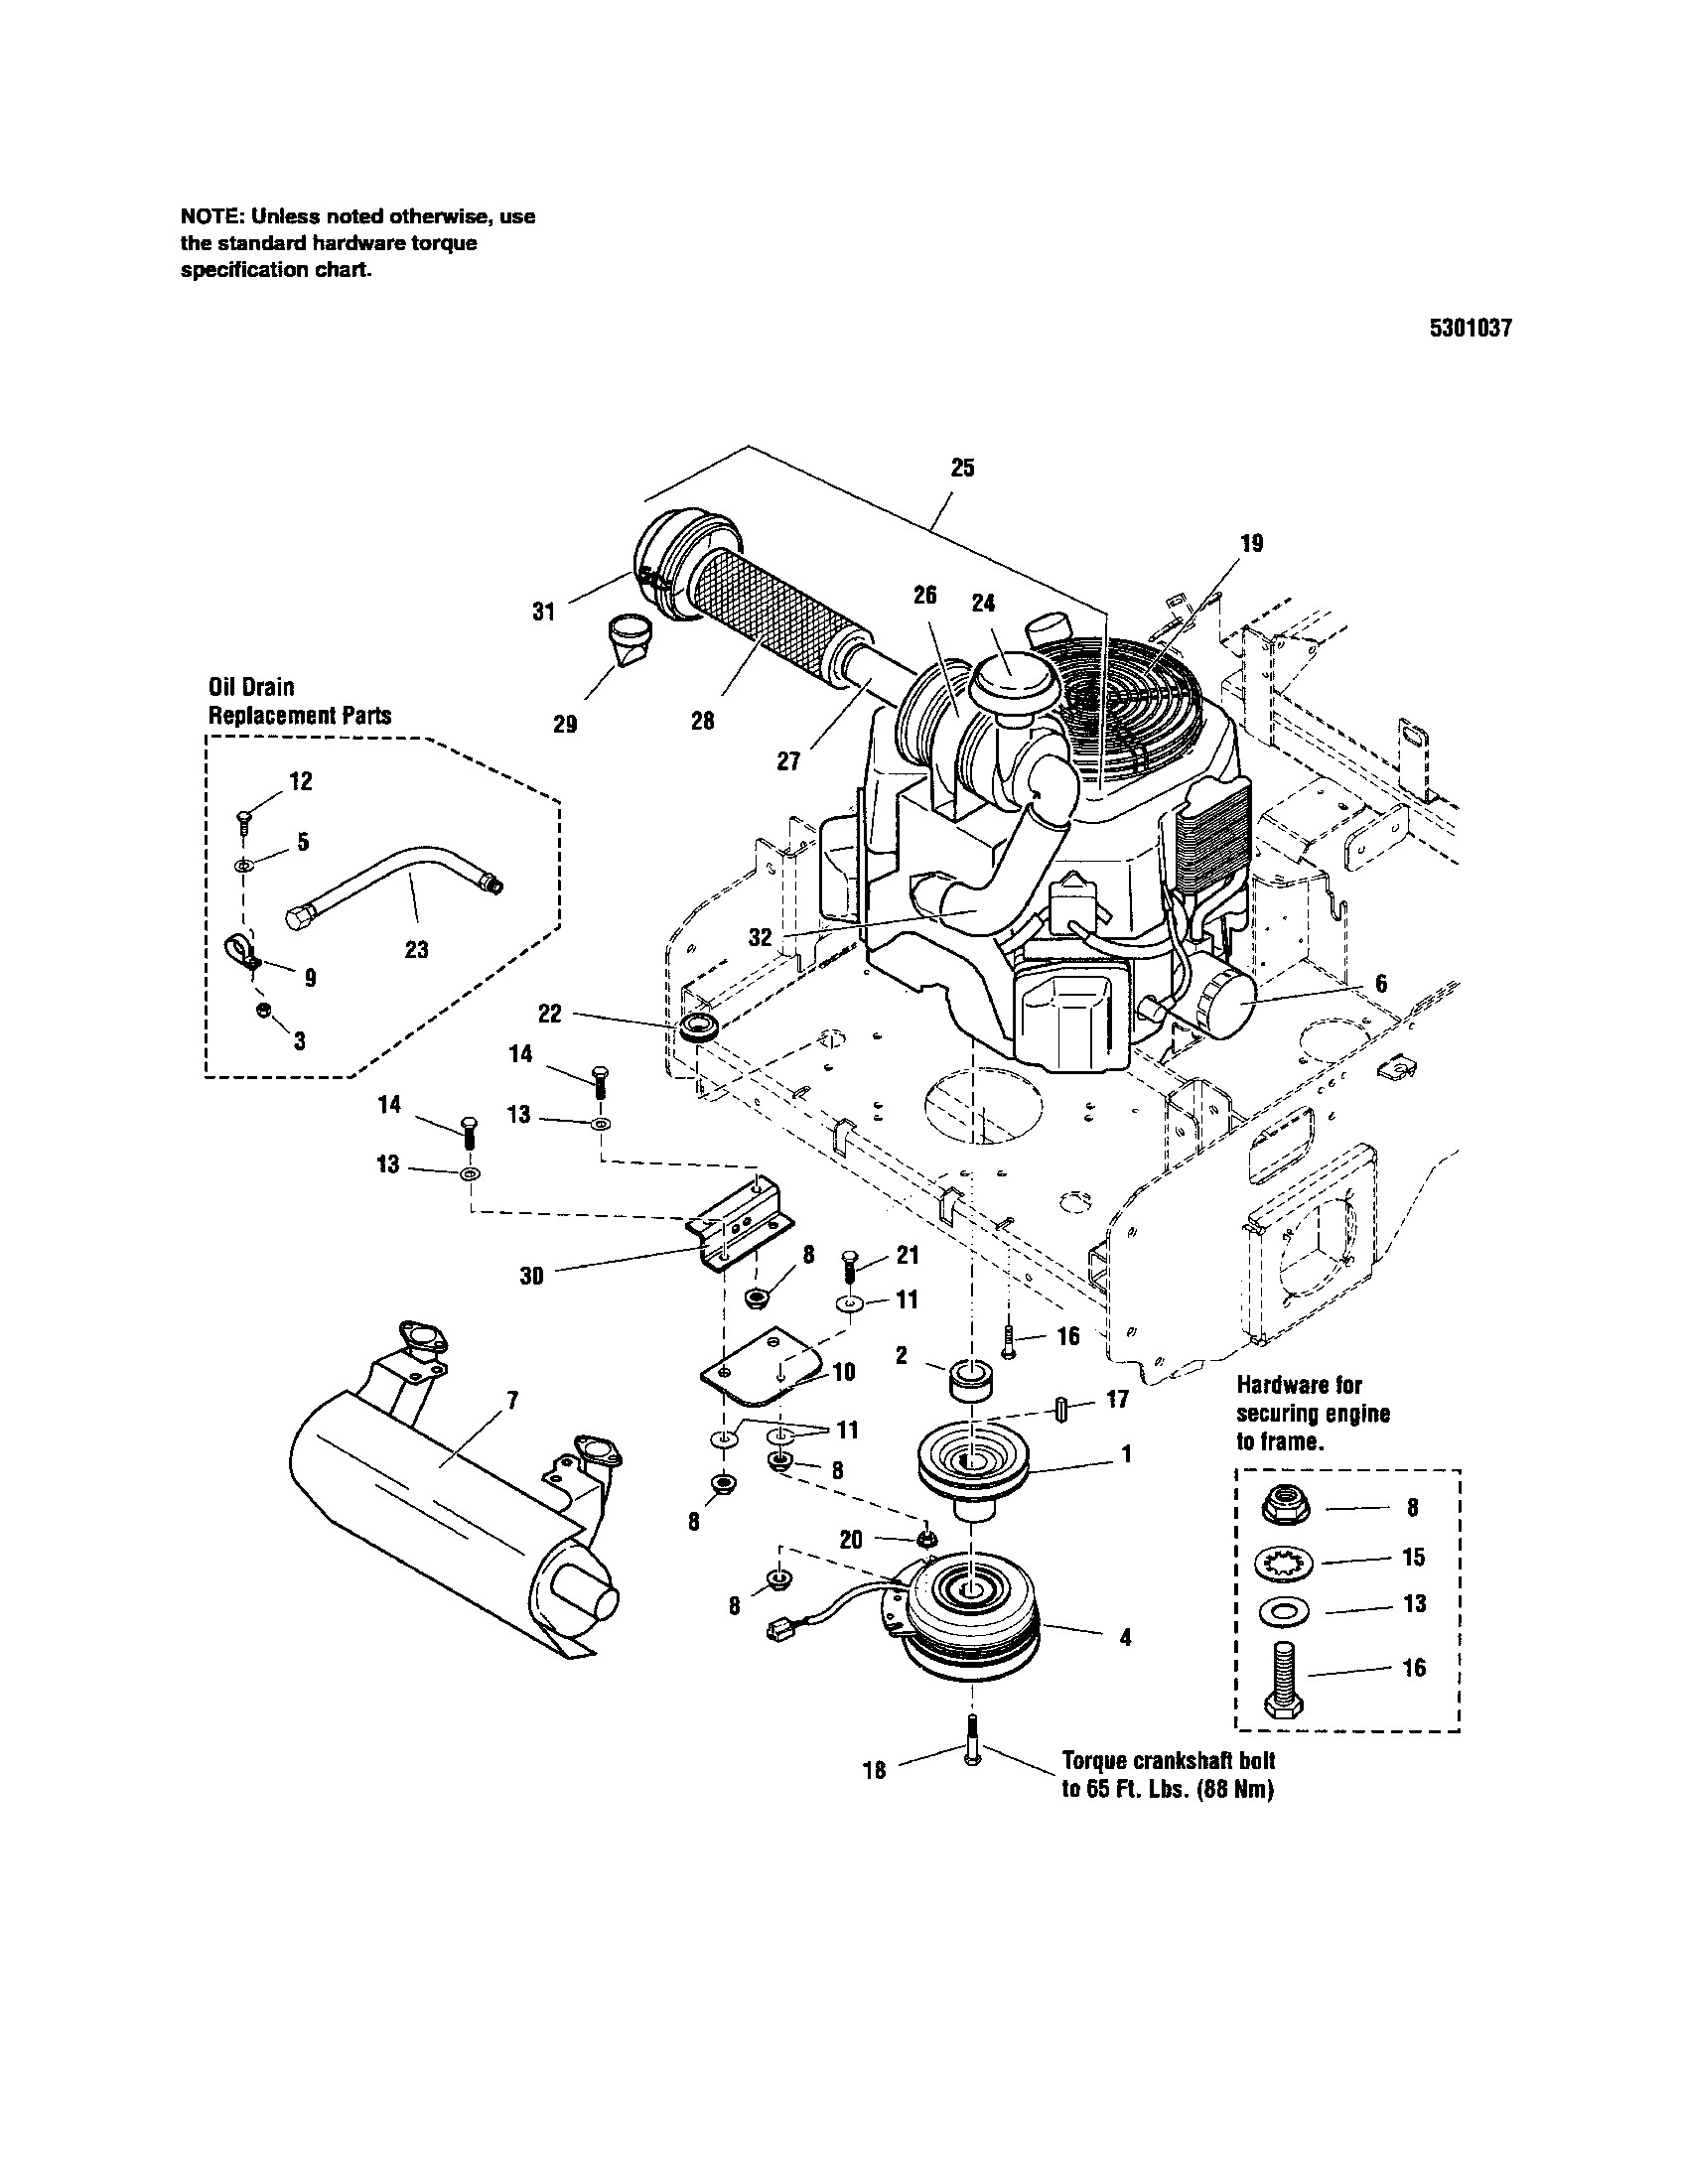 Kohler Engine Diagram Ask Answer Wiring Drawing Online First Hp Enthusiast Diagrams Rh Hop3ba Wisemamablog Com Valve Settings